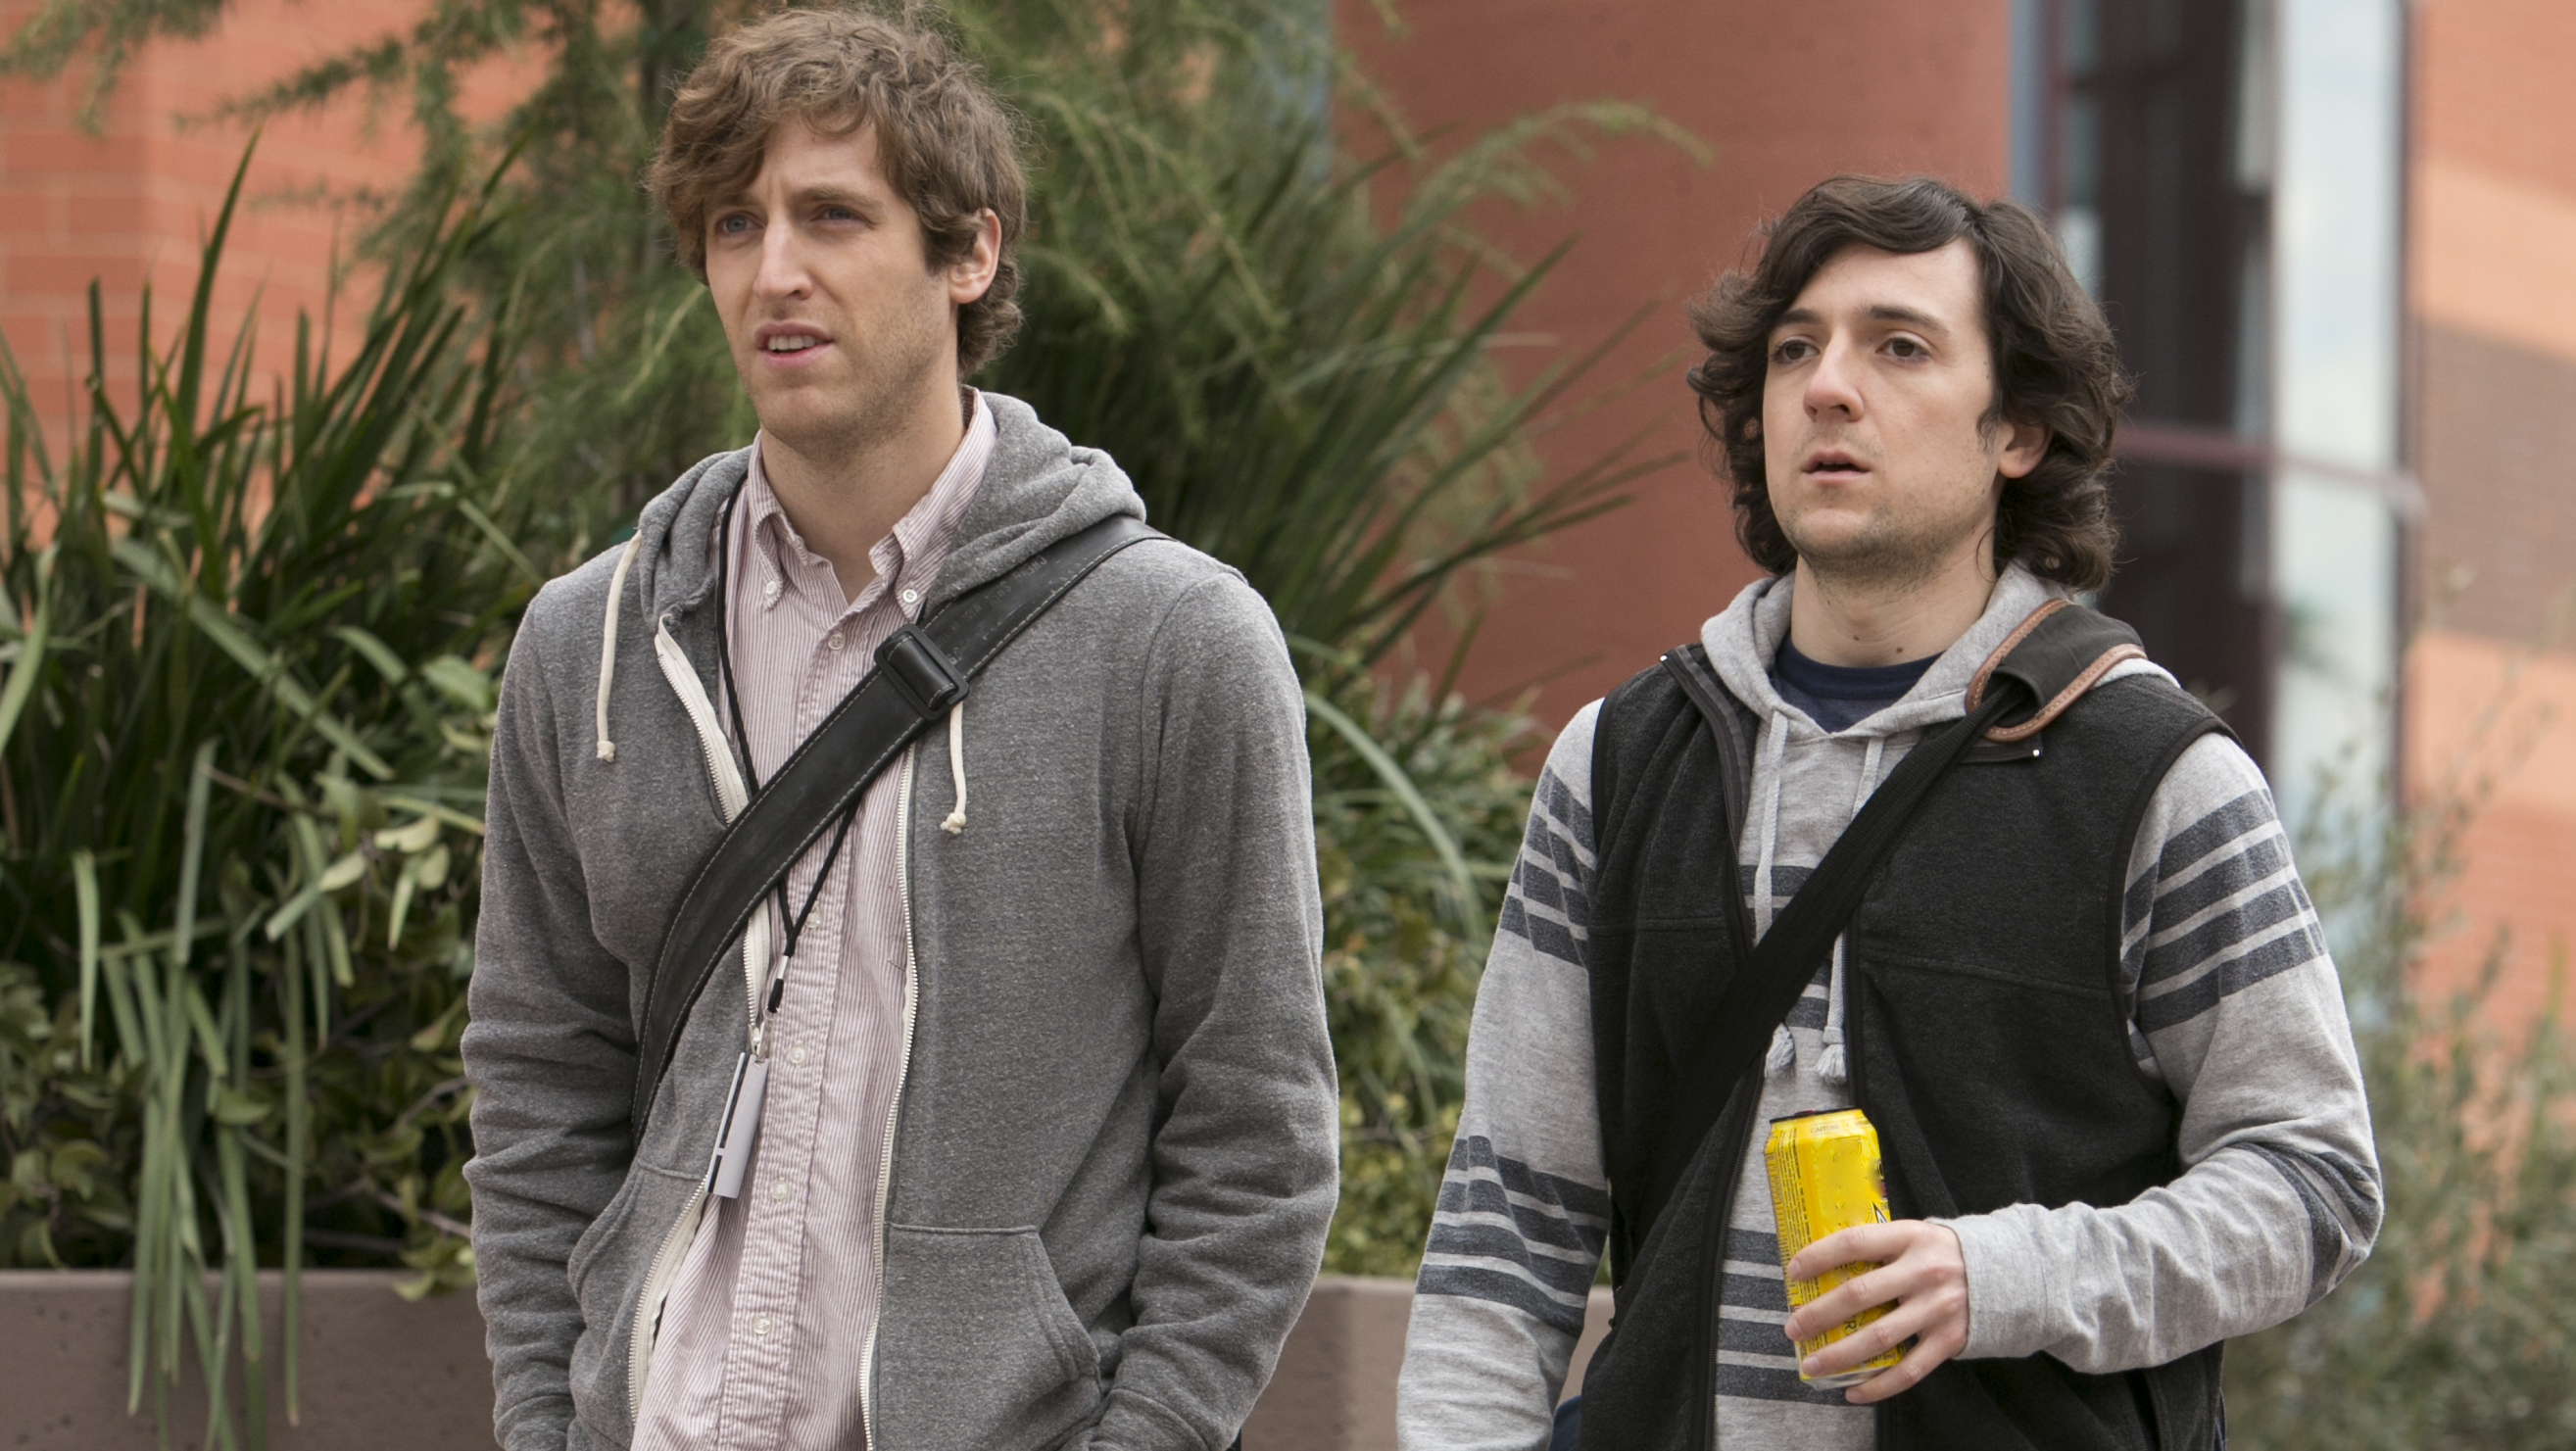 Thomas Middleditch and Josh Brener in HBO's Silicon Valley pilot.